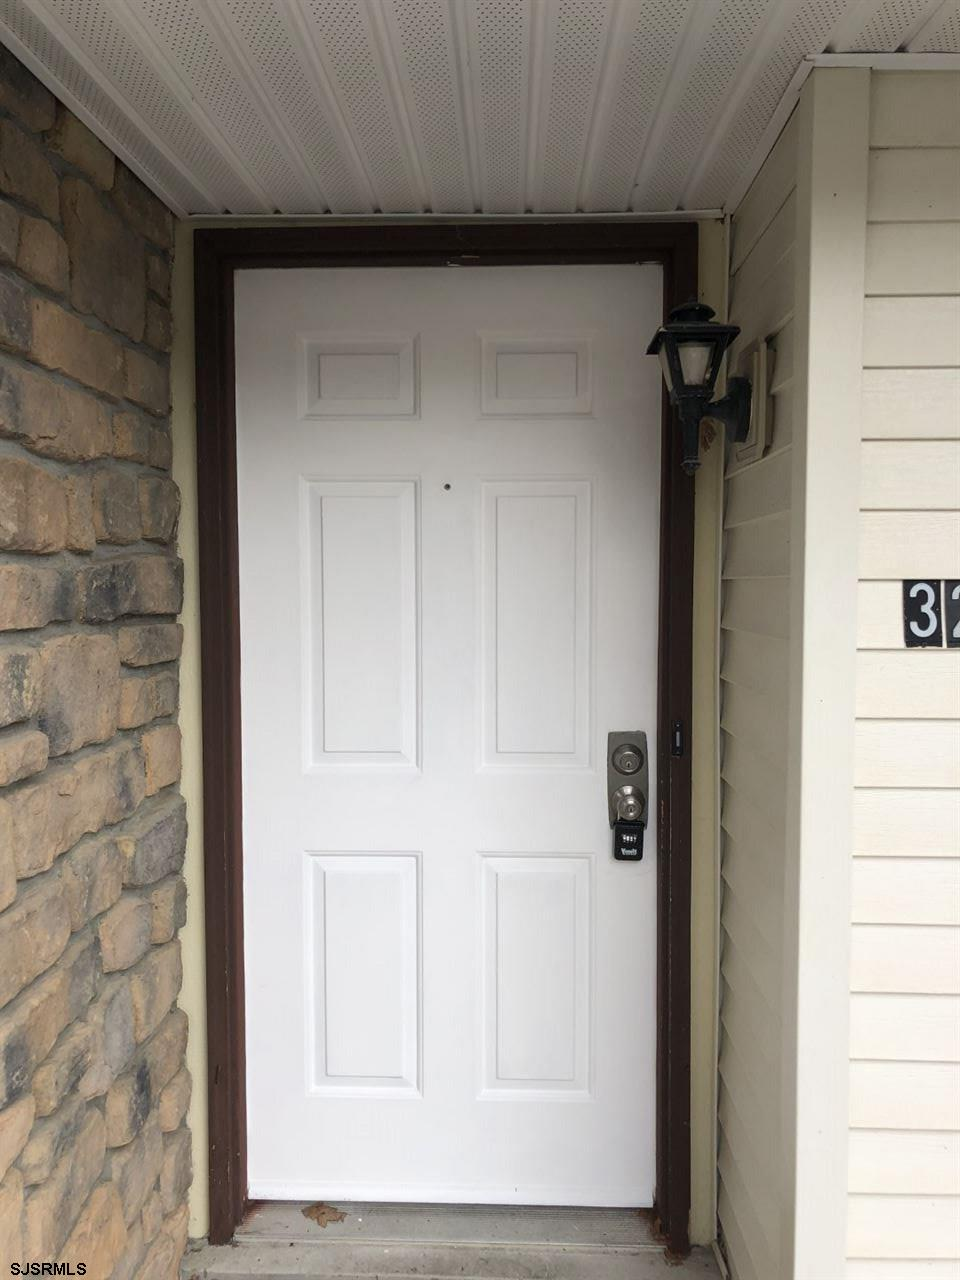 Nicely remodeled 2 Bedroom, 1 Bath Condo in the rear half of the community. This condo has new kitch